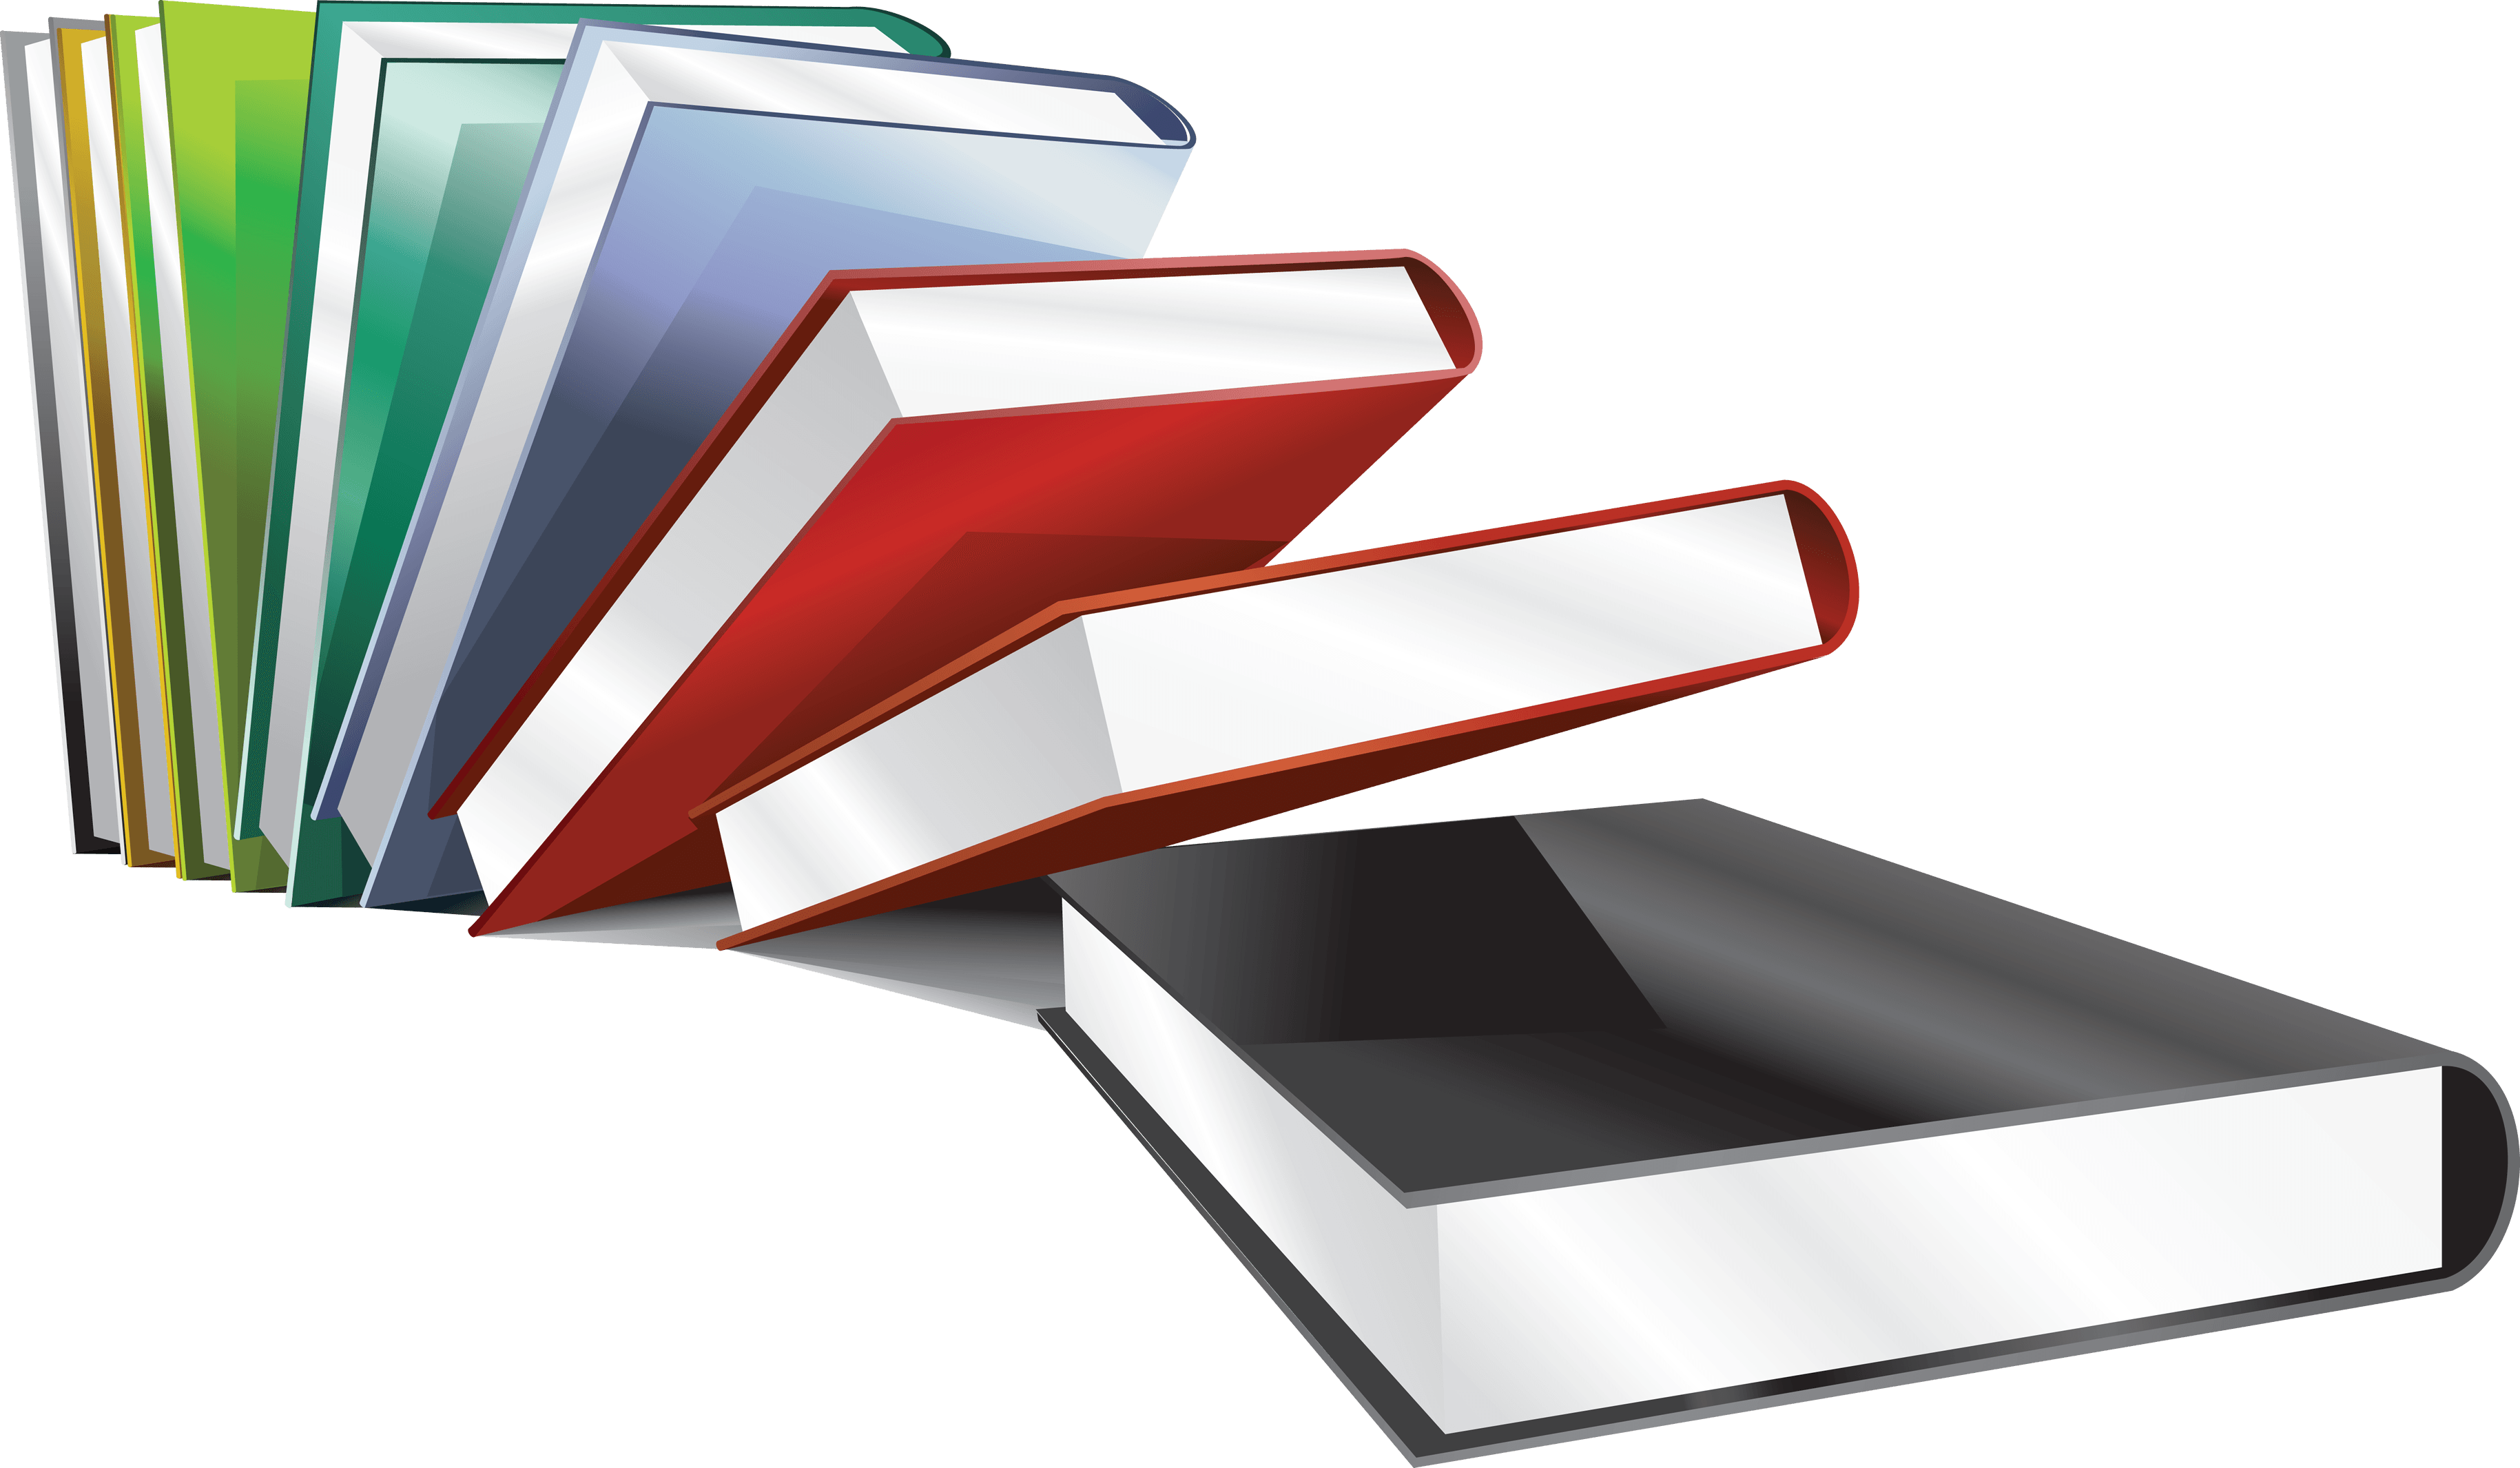 Png books. Box clipart transparent background